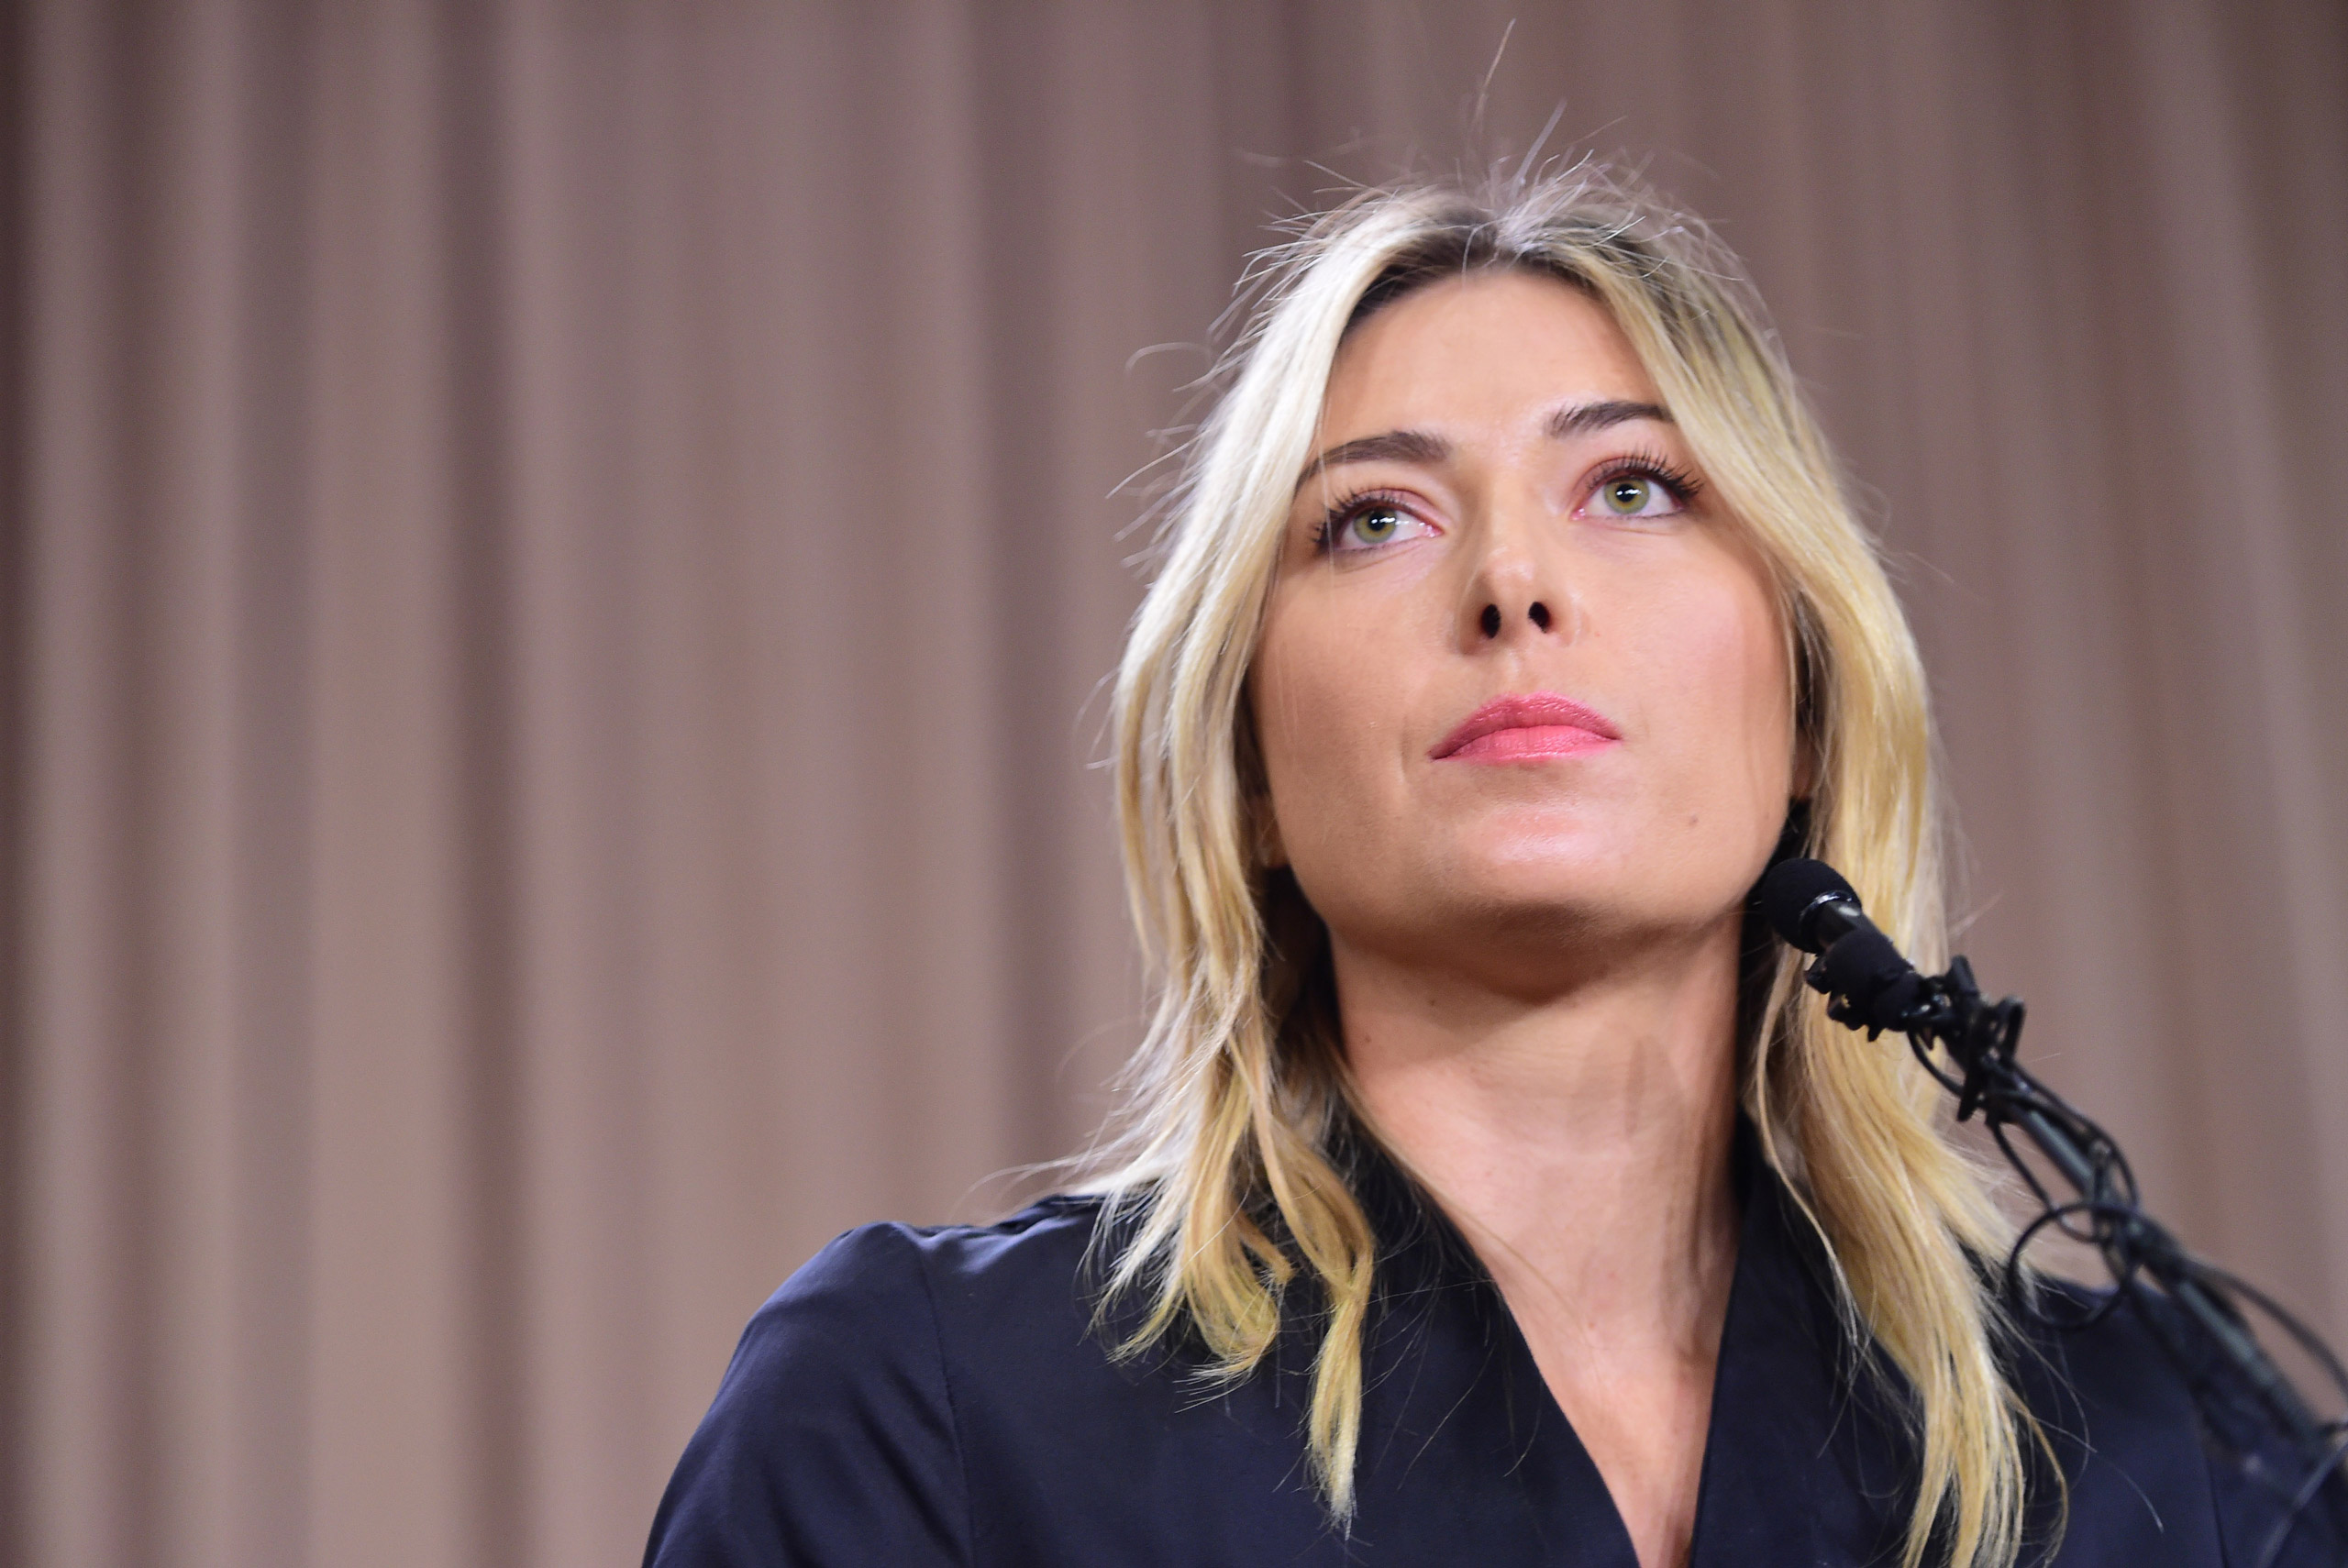 Russian tennis player Maria Sharapova speaks at a press conference in downtown Los Angeles on Mar. 7, 2016.